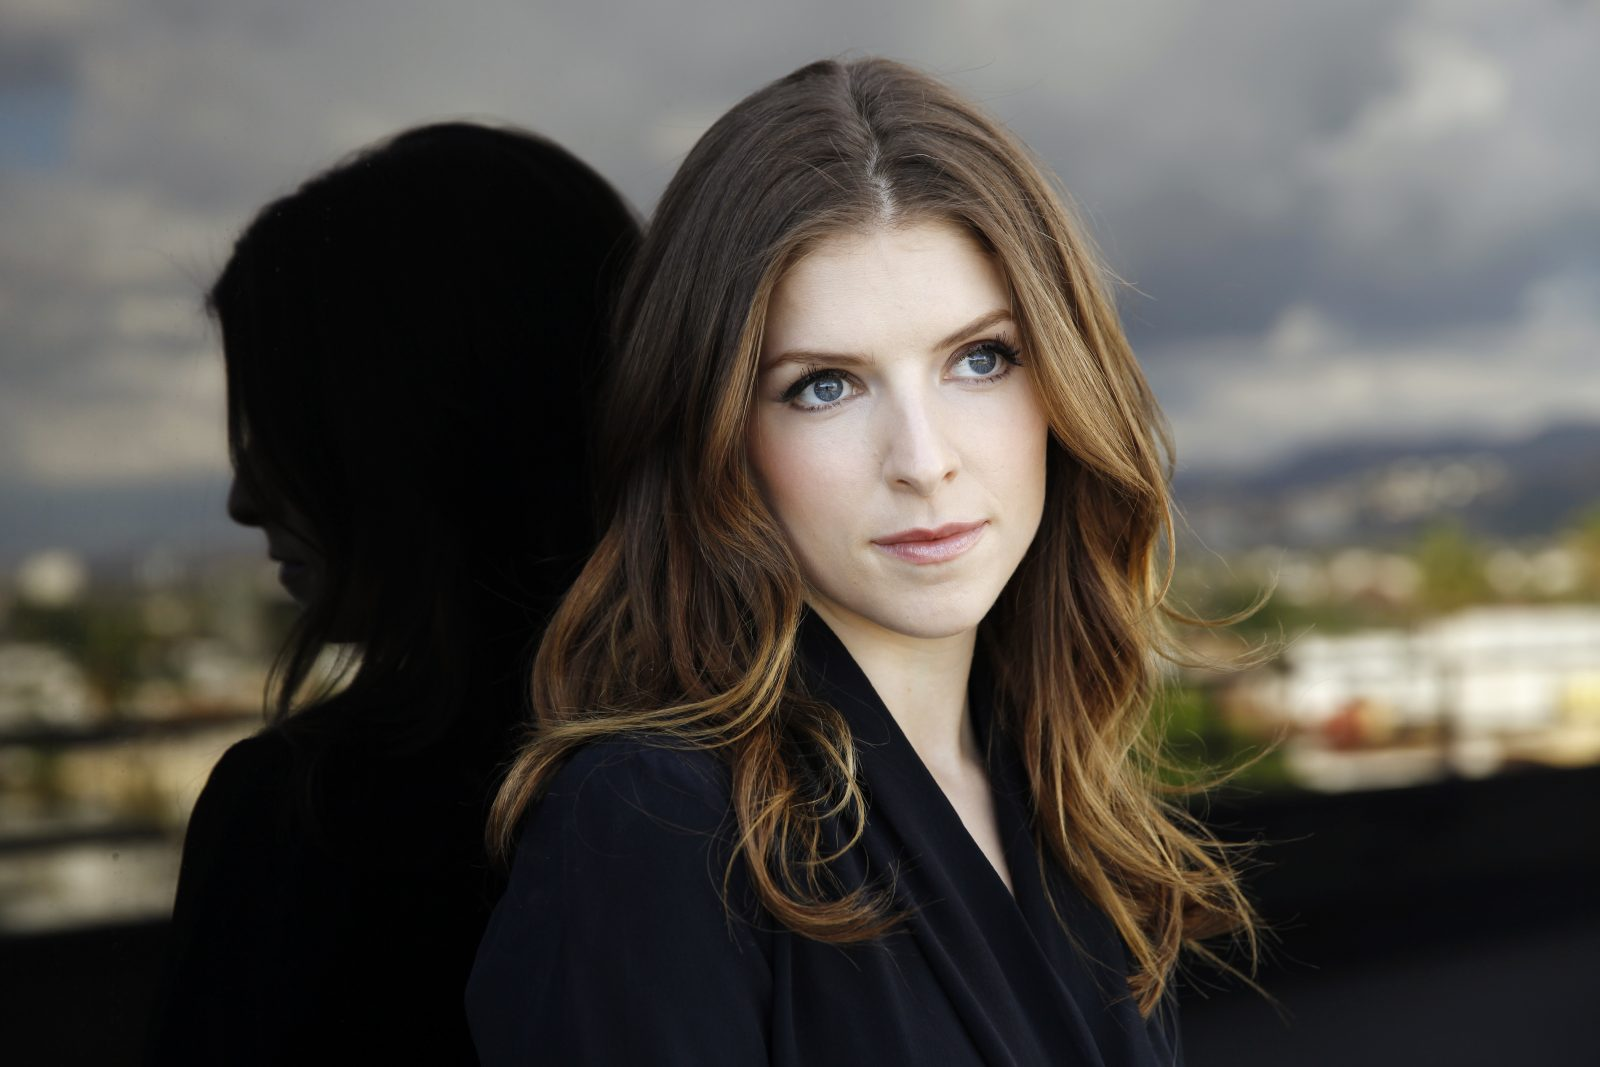 All to Know: Anna Kendrick Dating, Bio and Net Worth